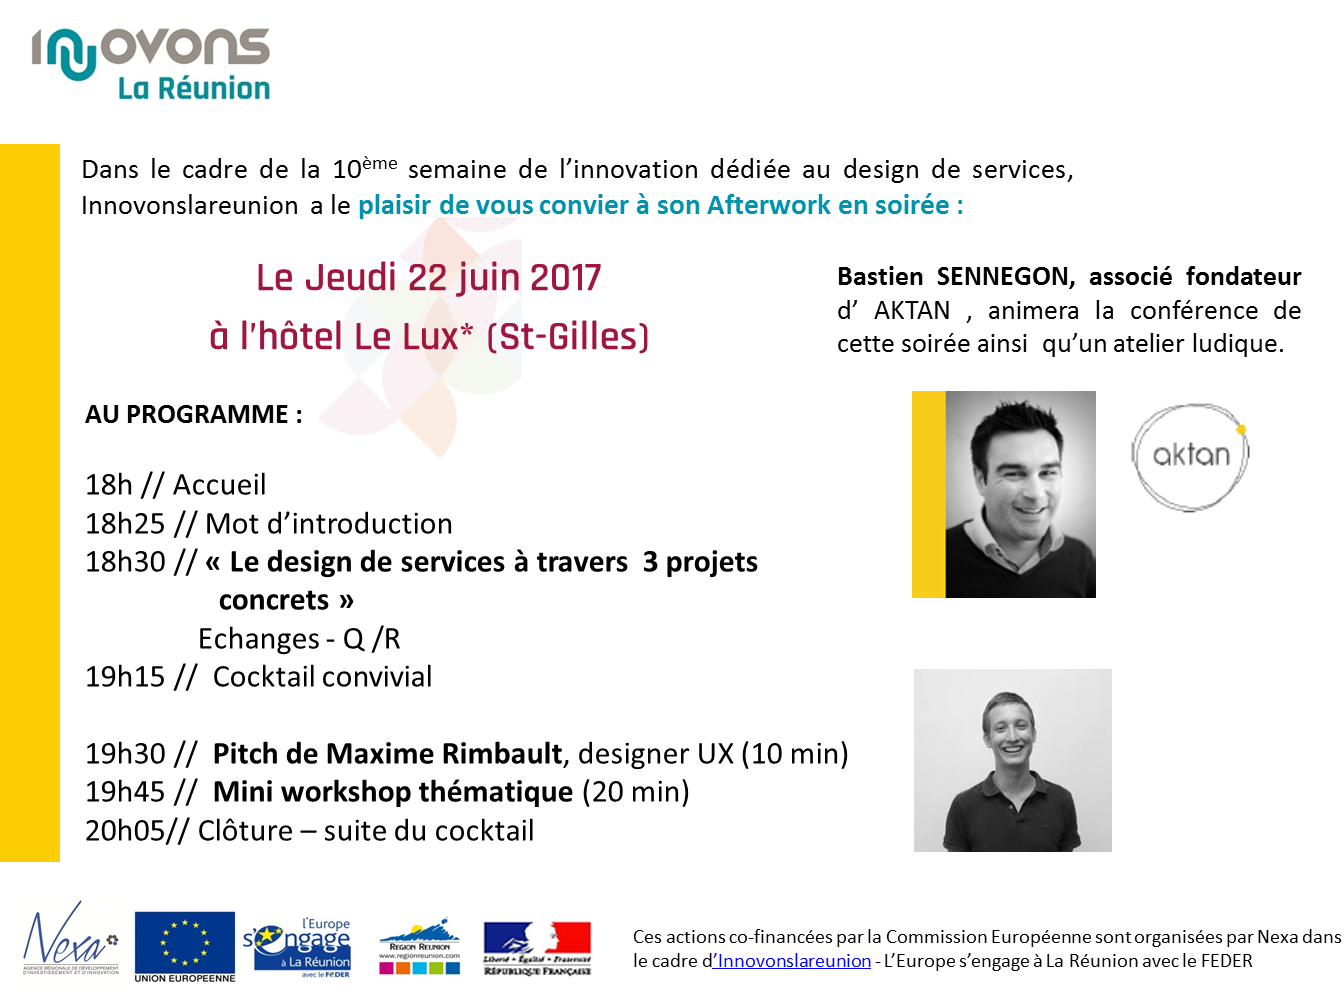 http://www.innovonslareunion.com/fileadmin/user_upload/innovons/Evenements/SEM_DESIGN/Sem_design2017/20170622_Invitation_afterwork_affiche.png